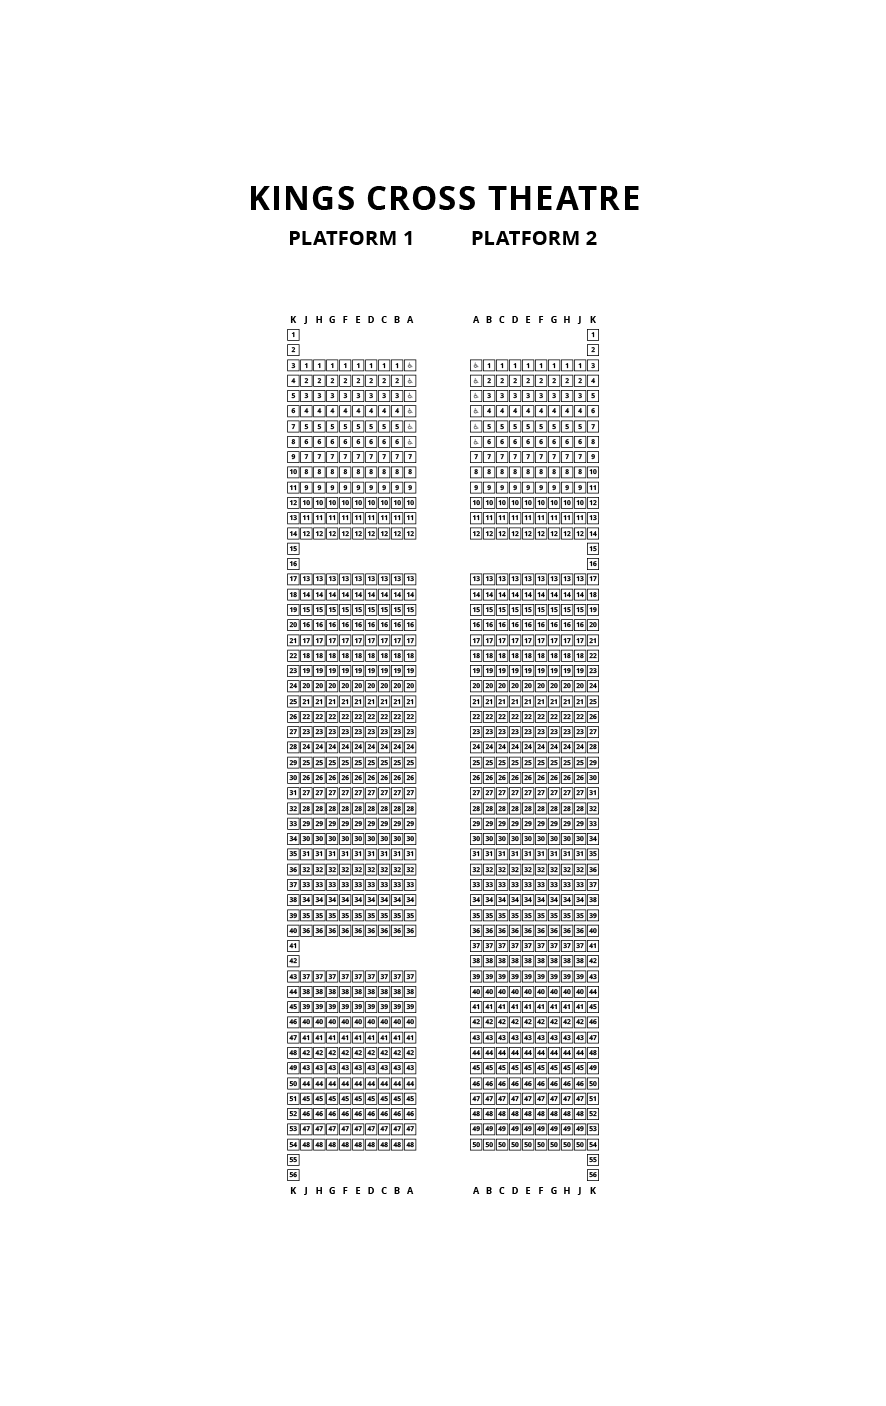 King's Cross Theatre Seating Plan